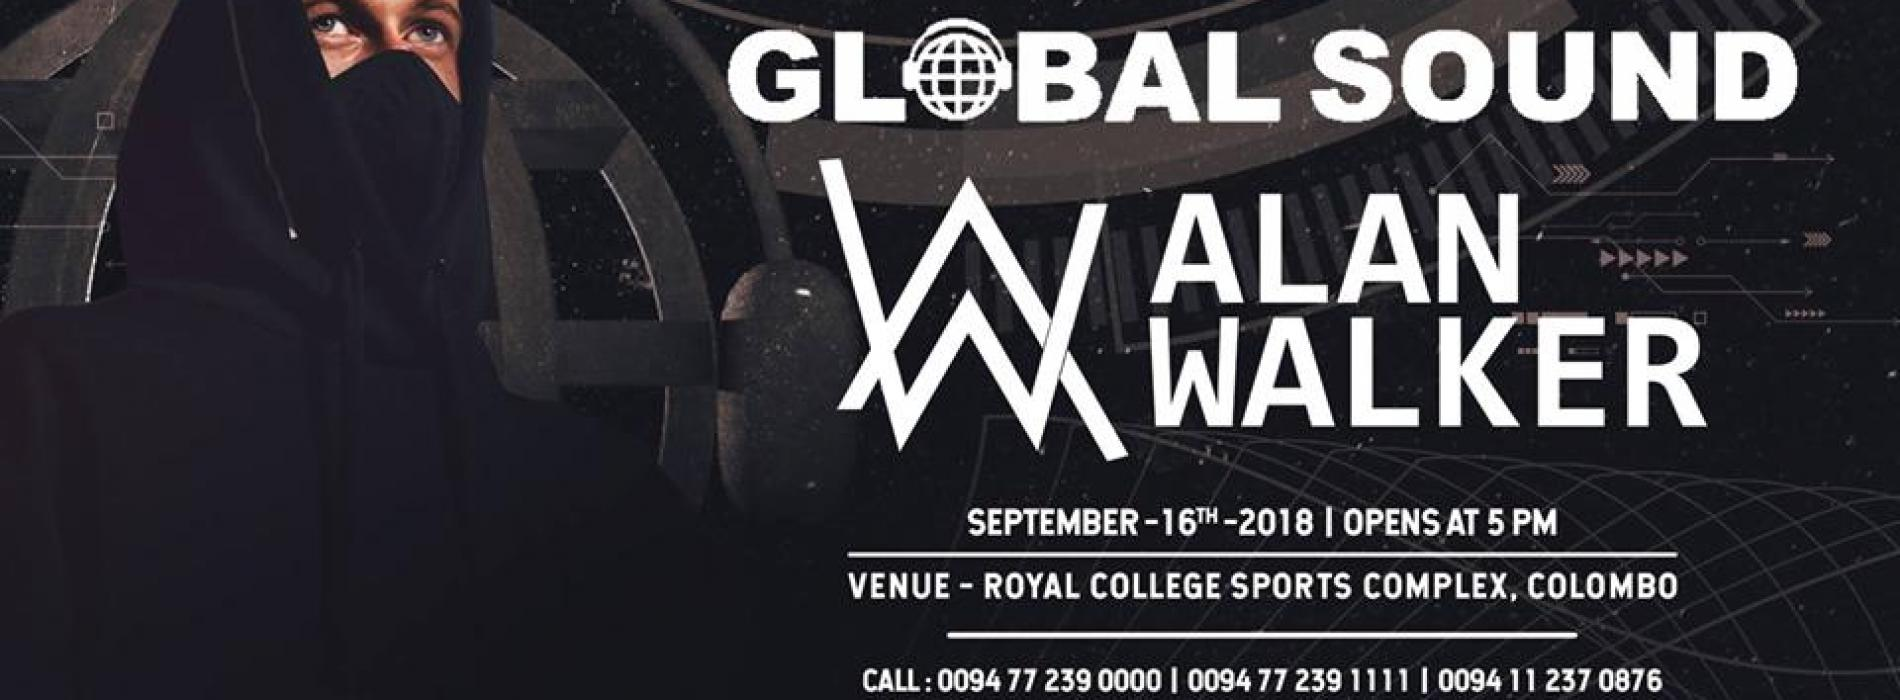 Global Sound With Alan Walker